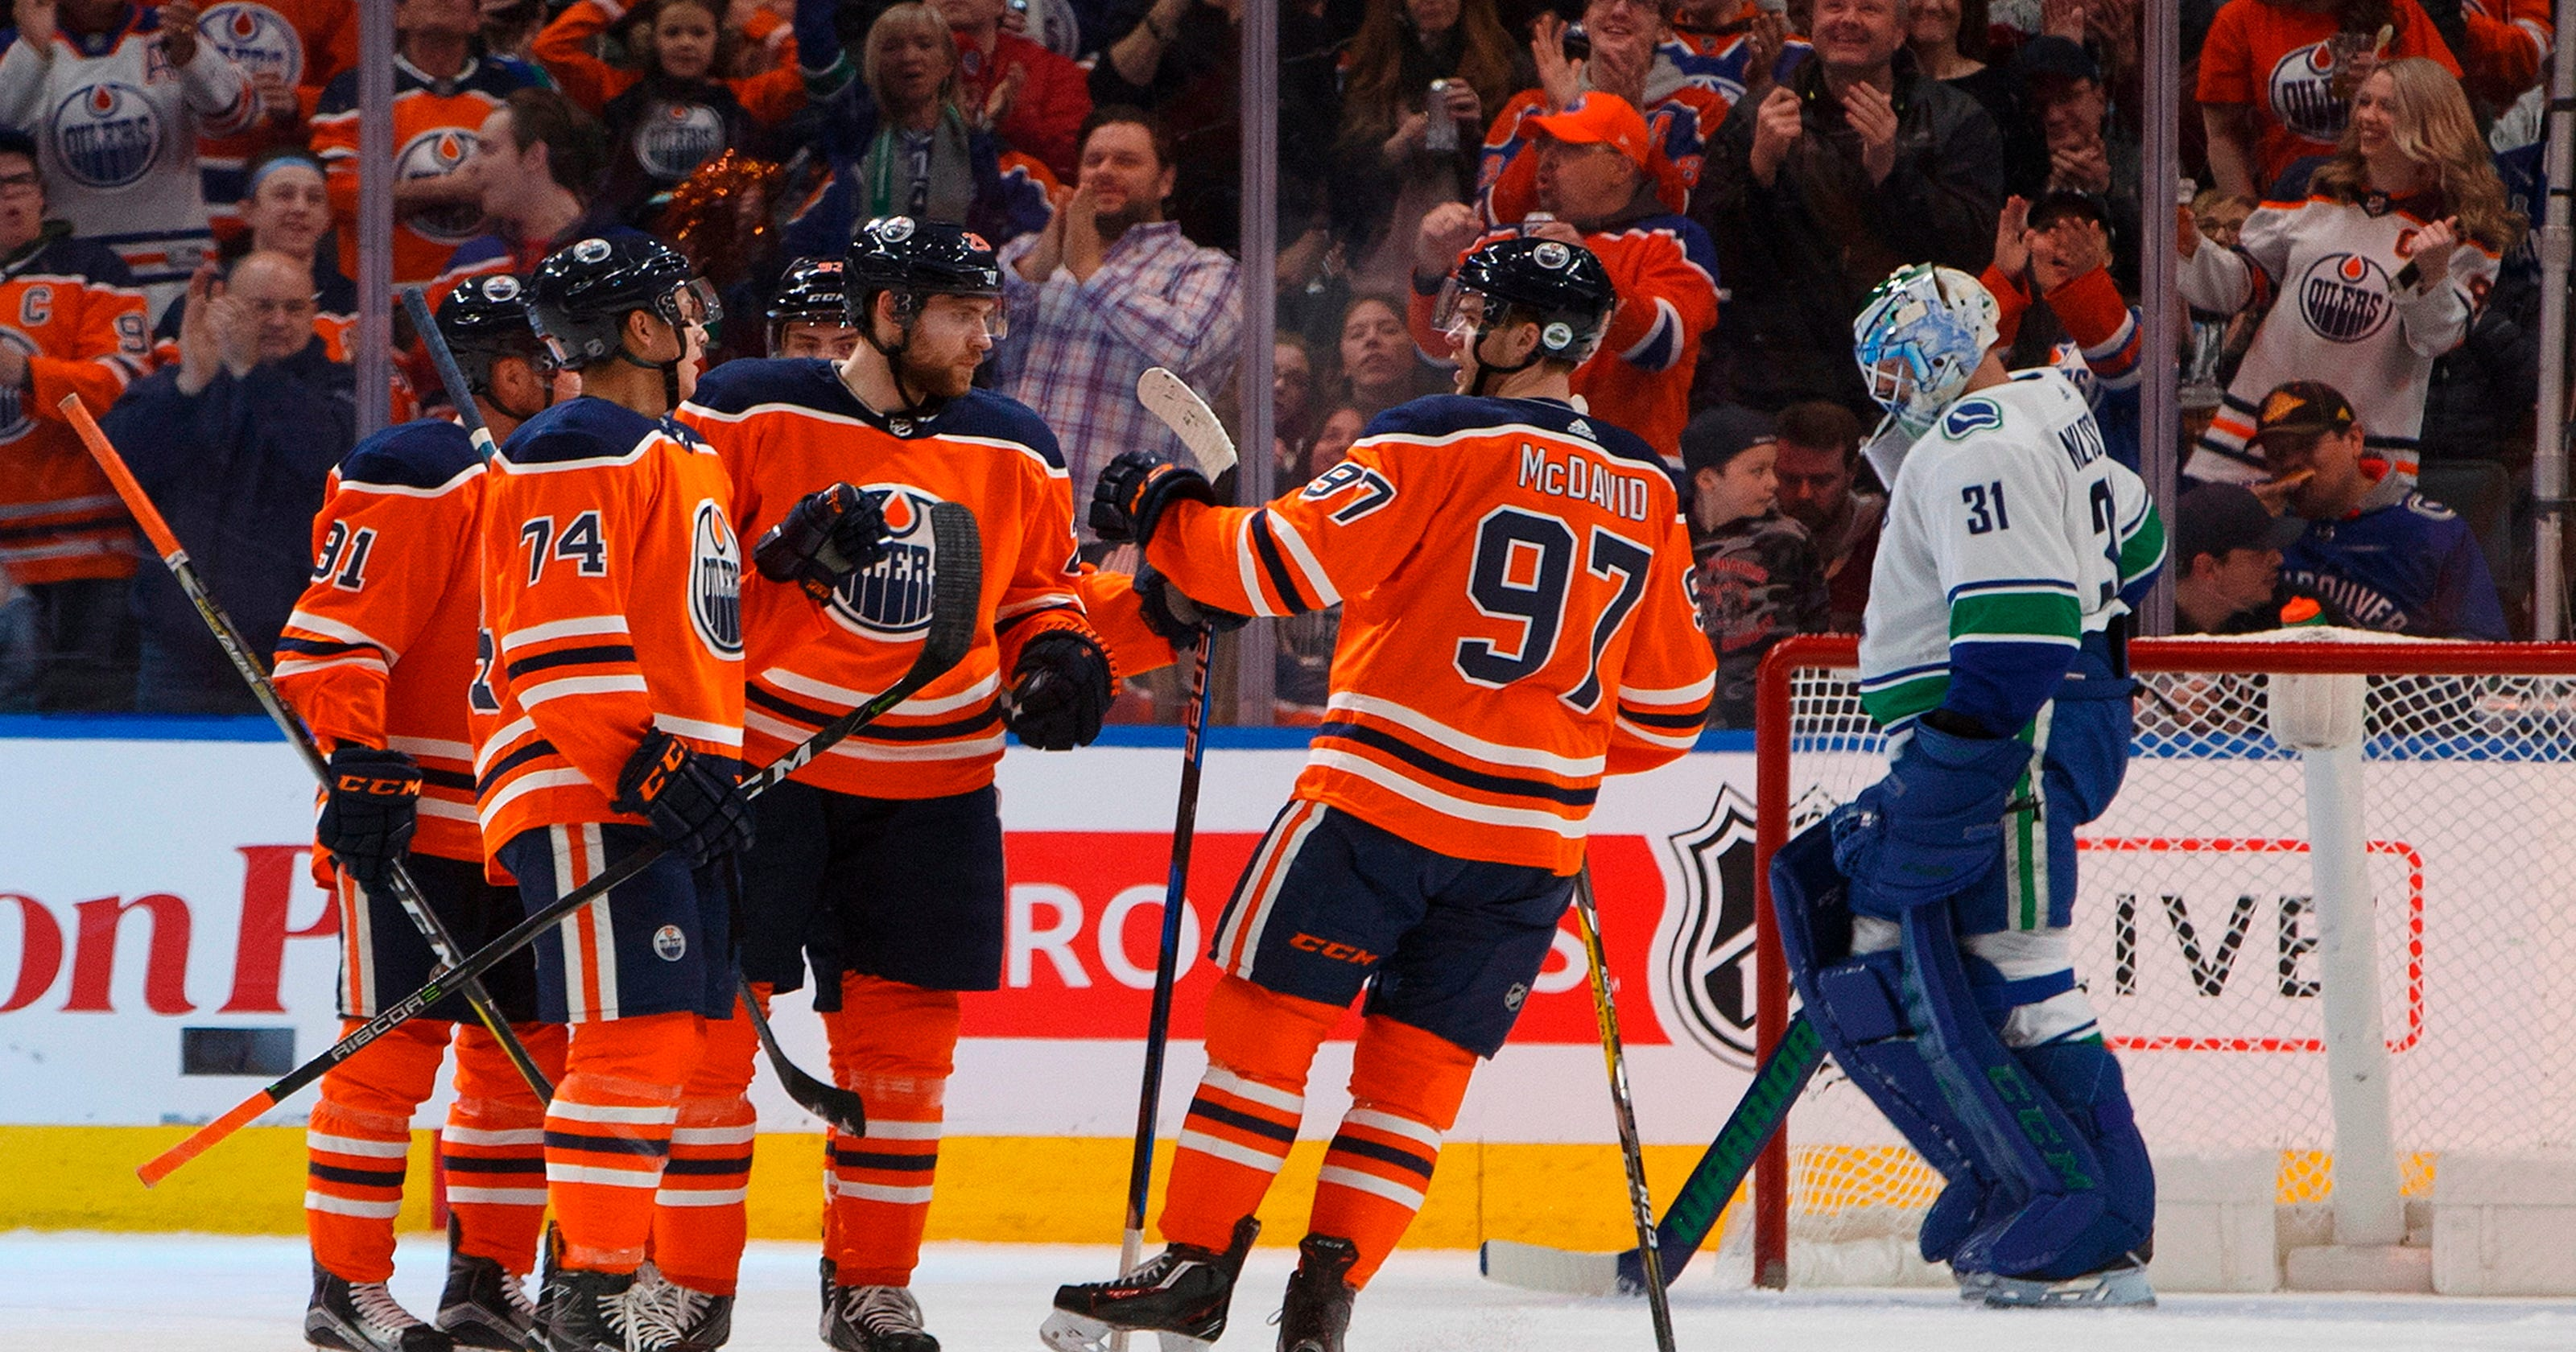 Oilers win in shootout in final game of Sedin twins 0579d3532